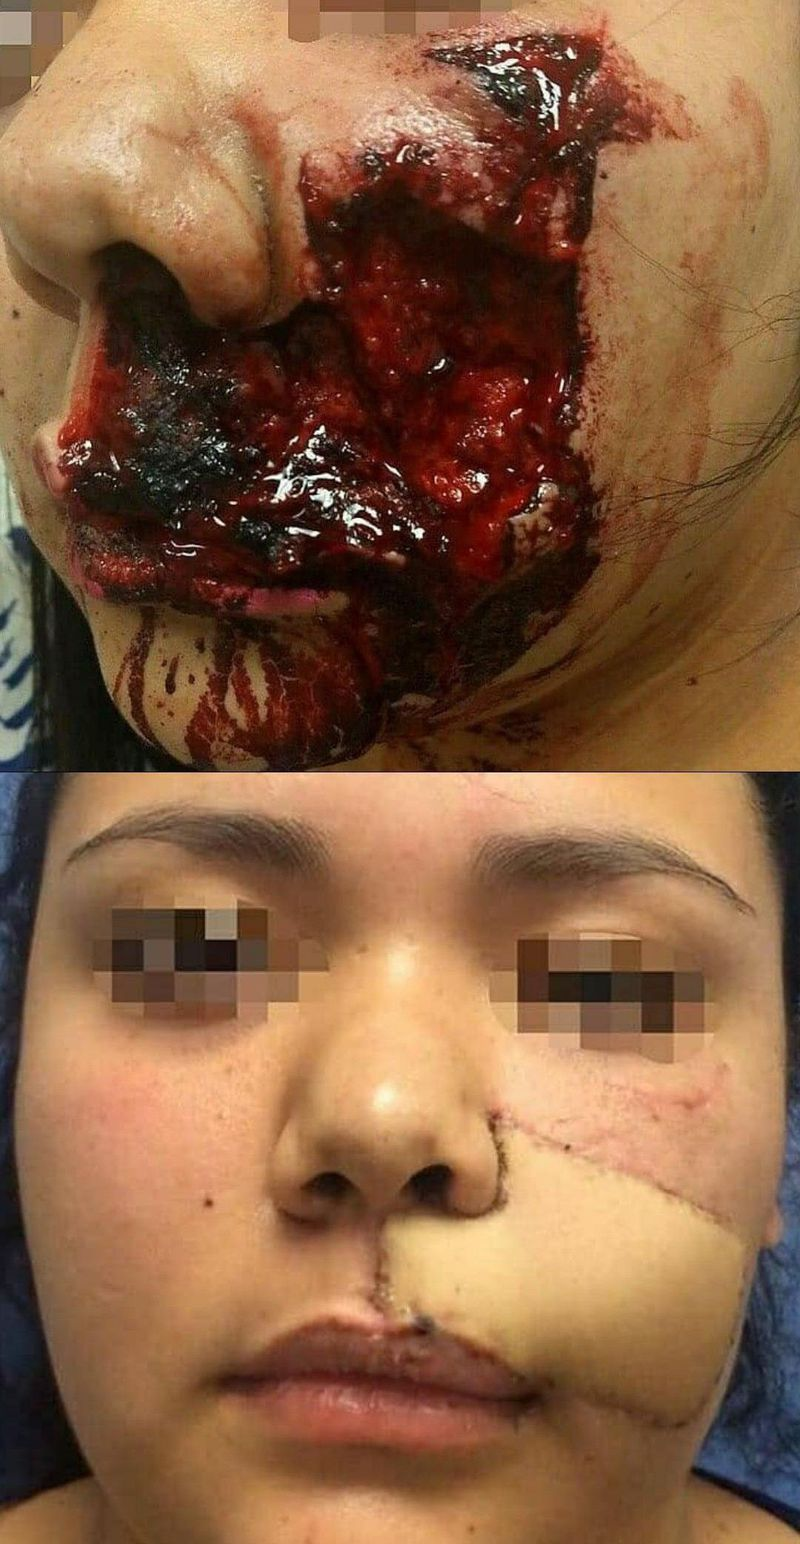 Dog attack again: This woman was attacked by a dog and suffered a bite in the facial area. As usual, when the repair was done with a free flap, the patient's forearm was used for the transplant.